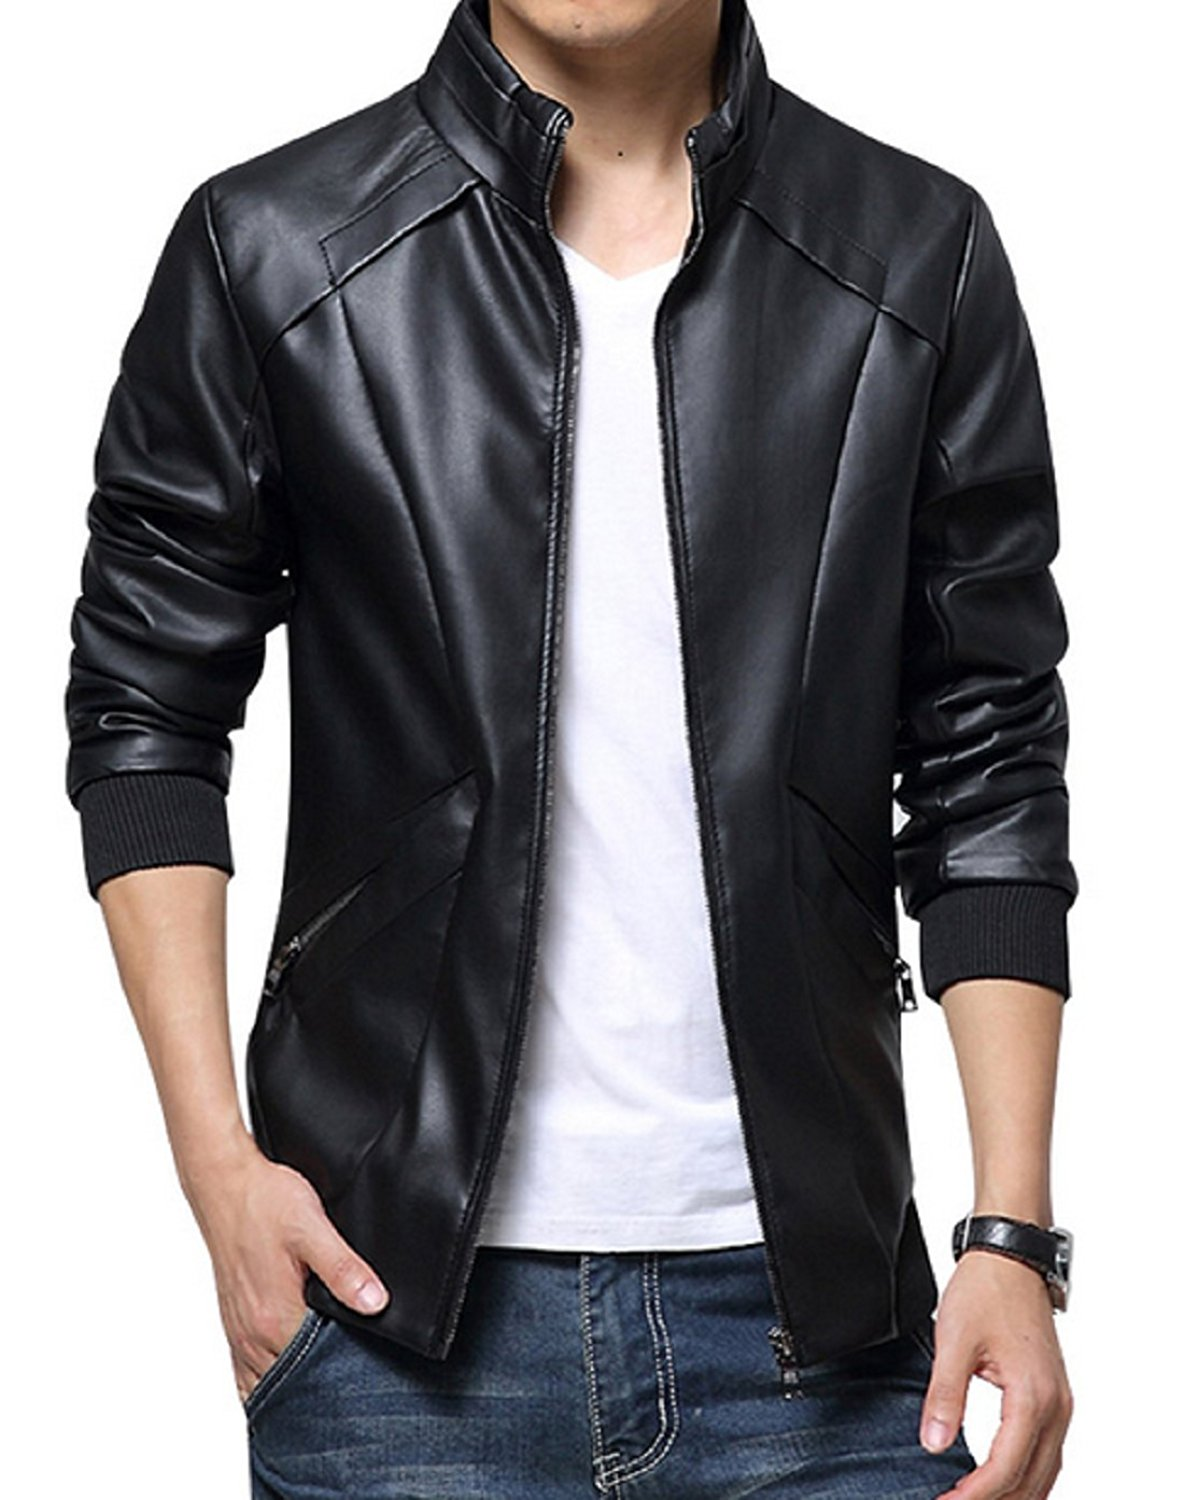 Presentatore Età adulta Leonardoda  Men's Waist Pockets Simple Black Leather Jacket - Films Jackets